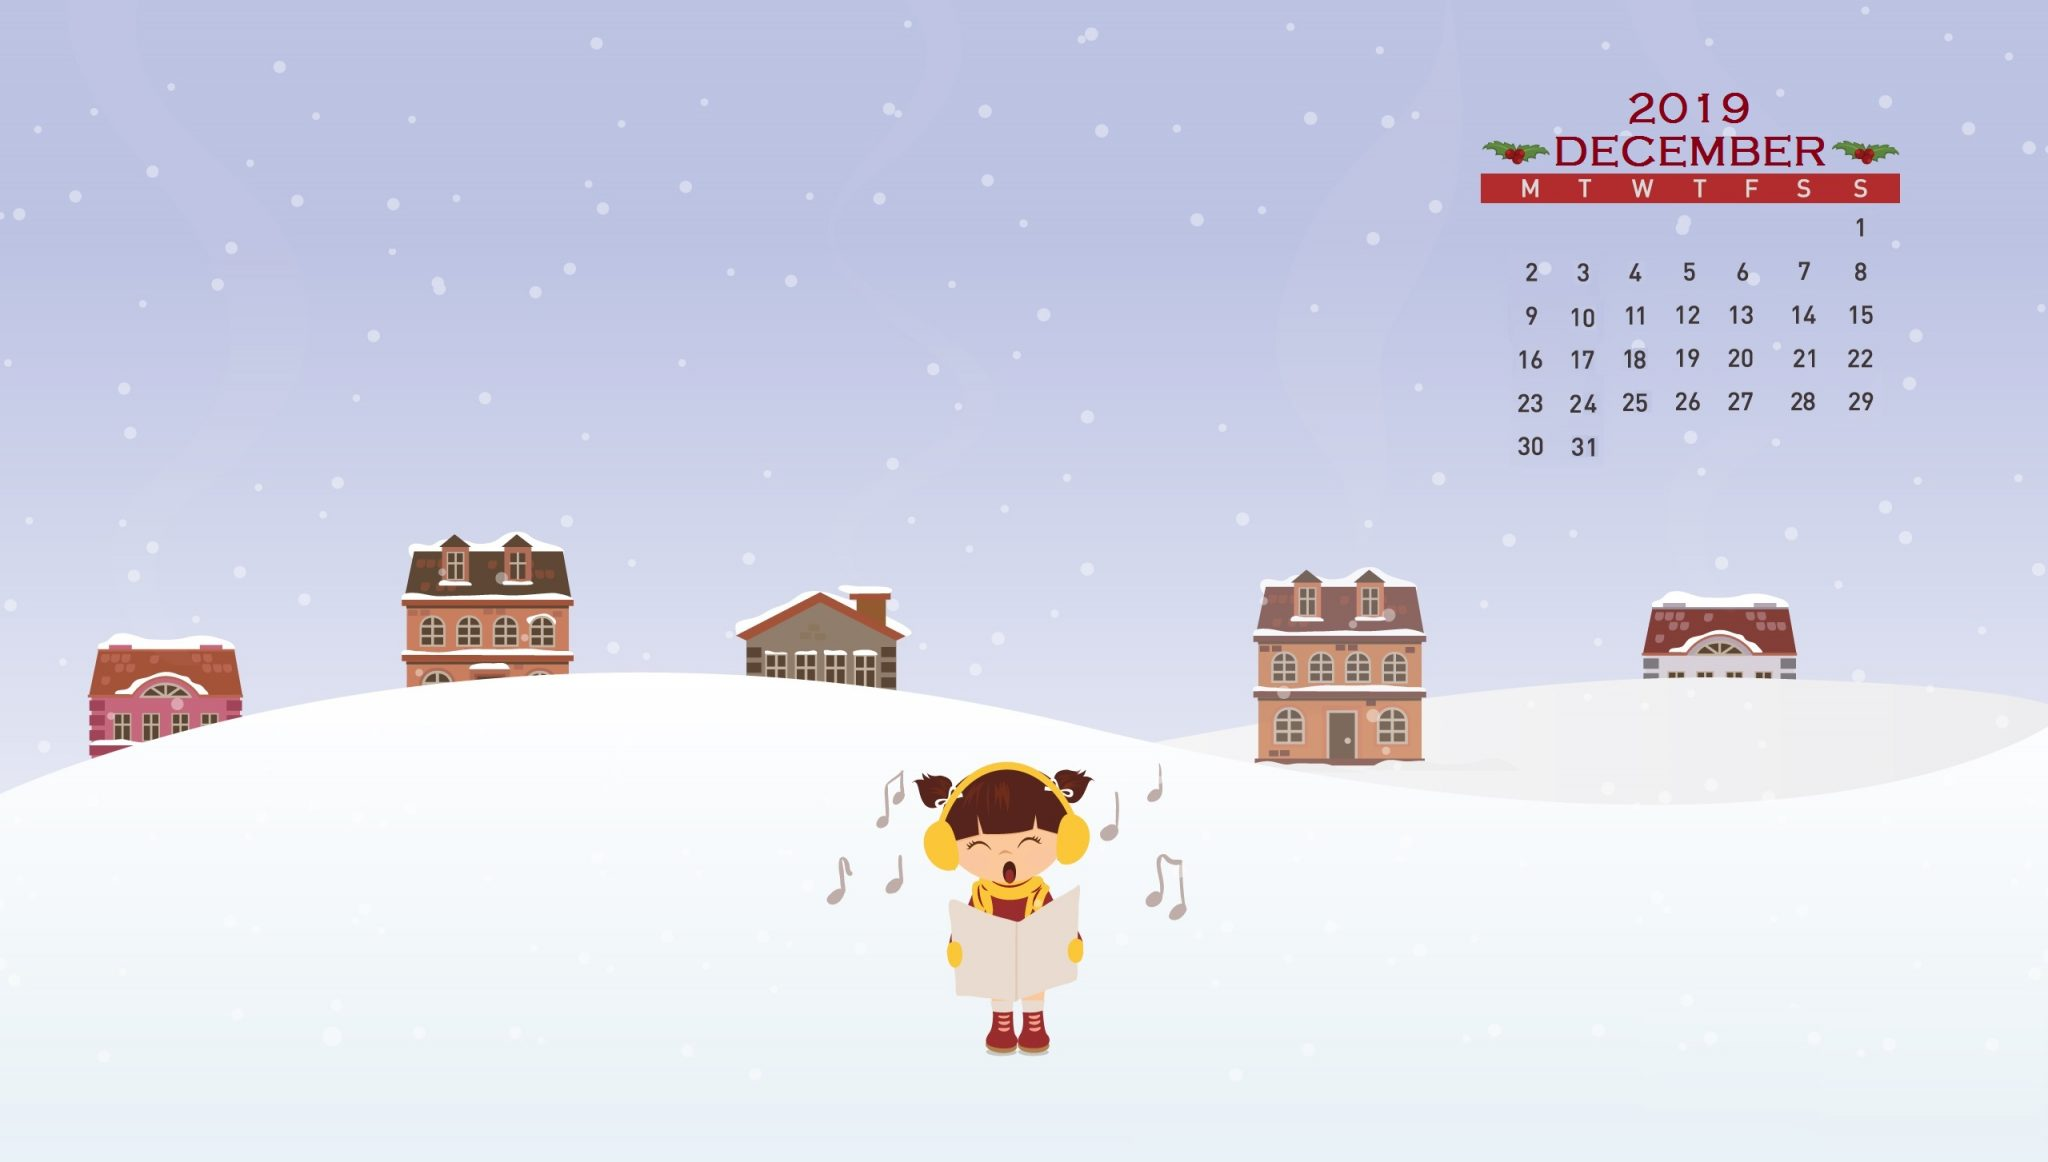 Winter December 2019 Calendar Wallpaper